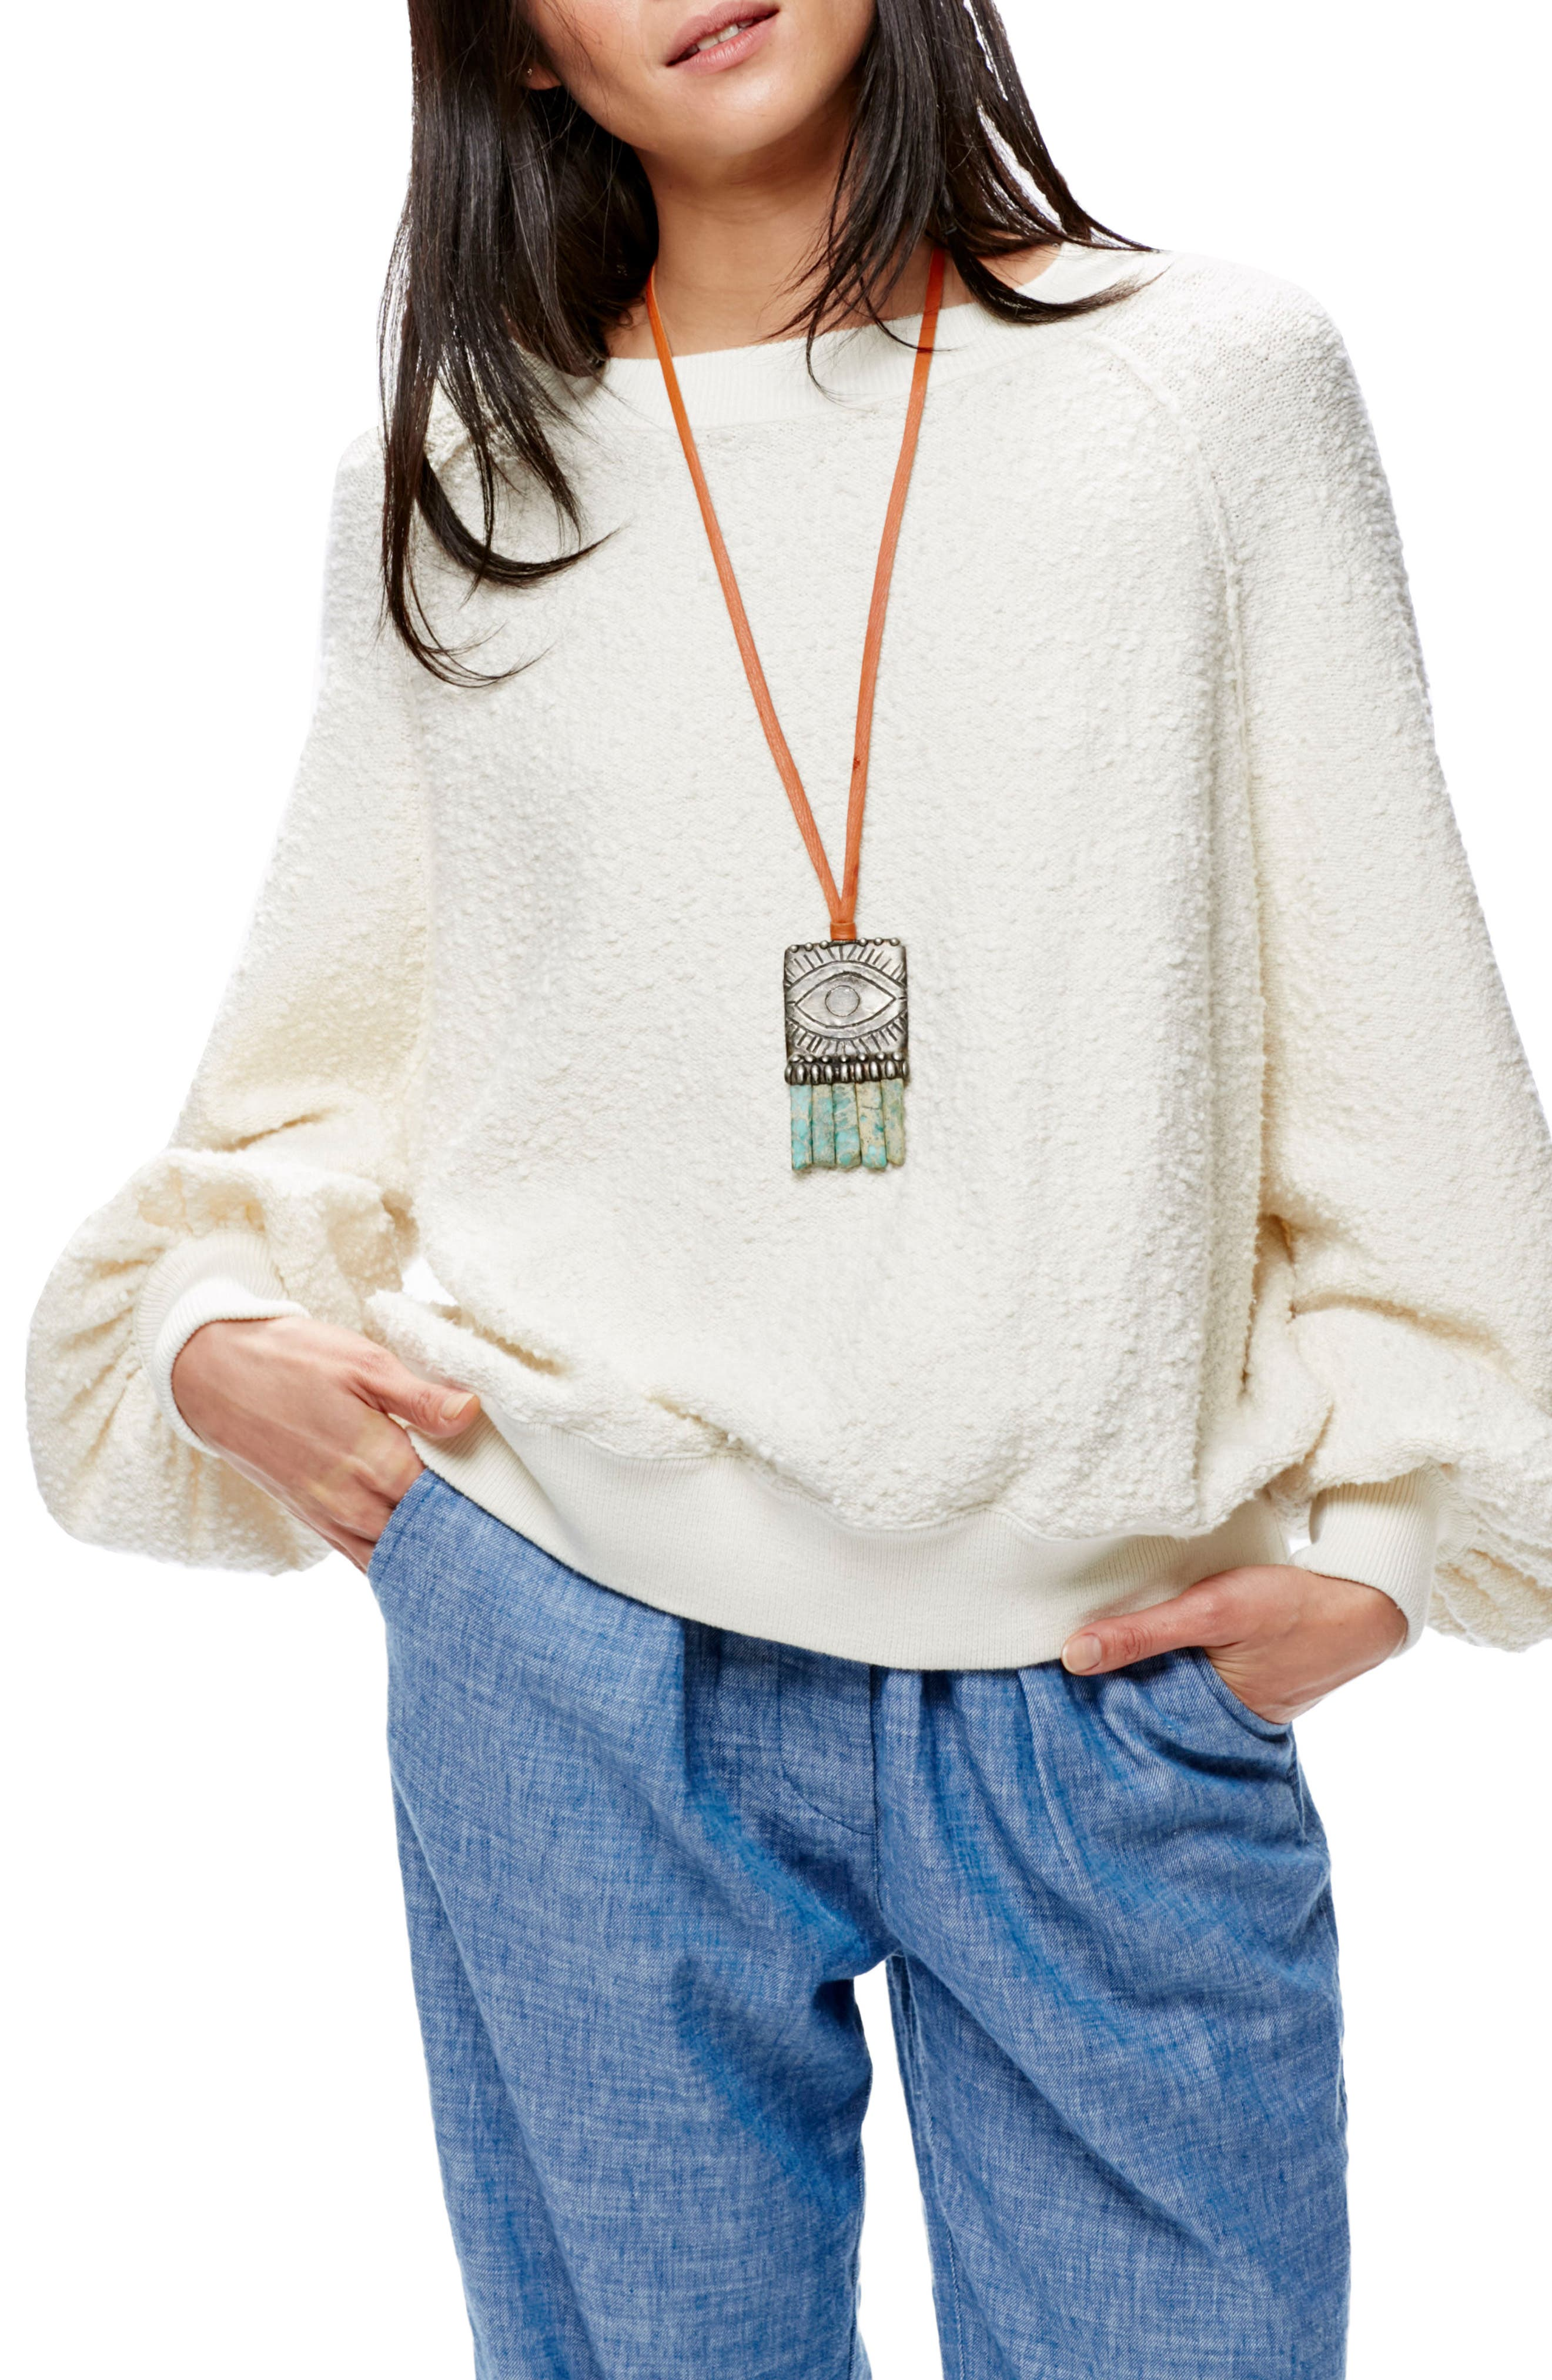 Found My Friend Sweatshirt,                         Main,                         color, Ivory